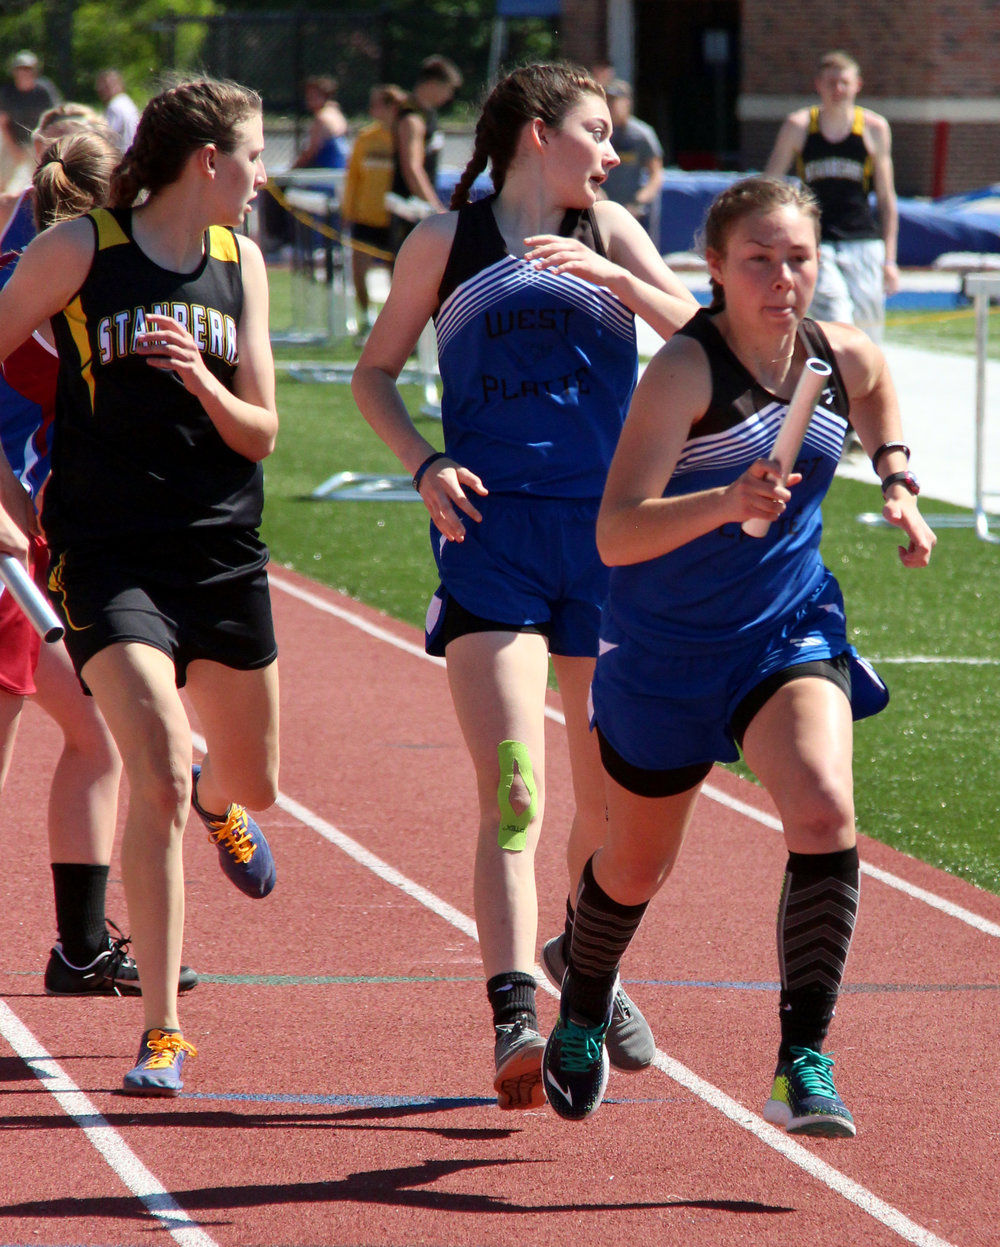 ROSS MARTIN/Citizen photo West Platte junior Rachel Heili (right) takes the baton from sophomore Lindsay Goodwin in the 4x400-meter relay Saturday, May 6 in the Class 1 District 8 track meet held at Rudolph Eskridge Stadium in Weston, Mo.